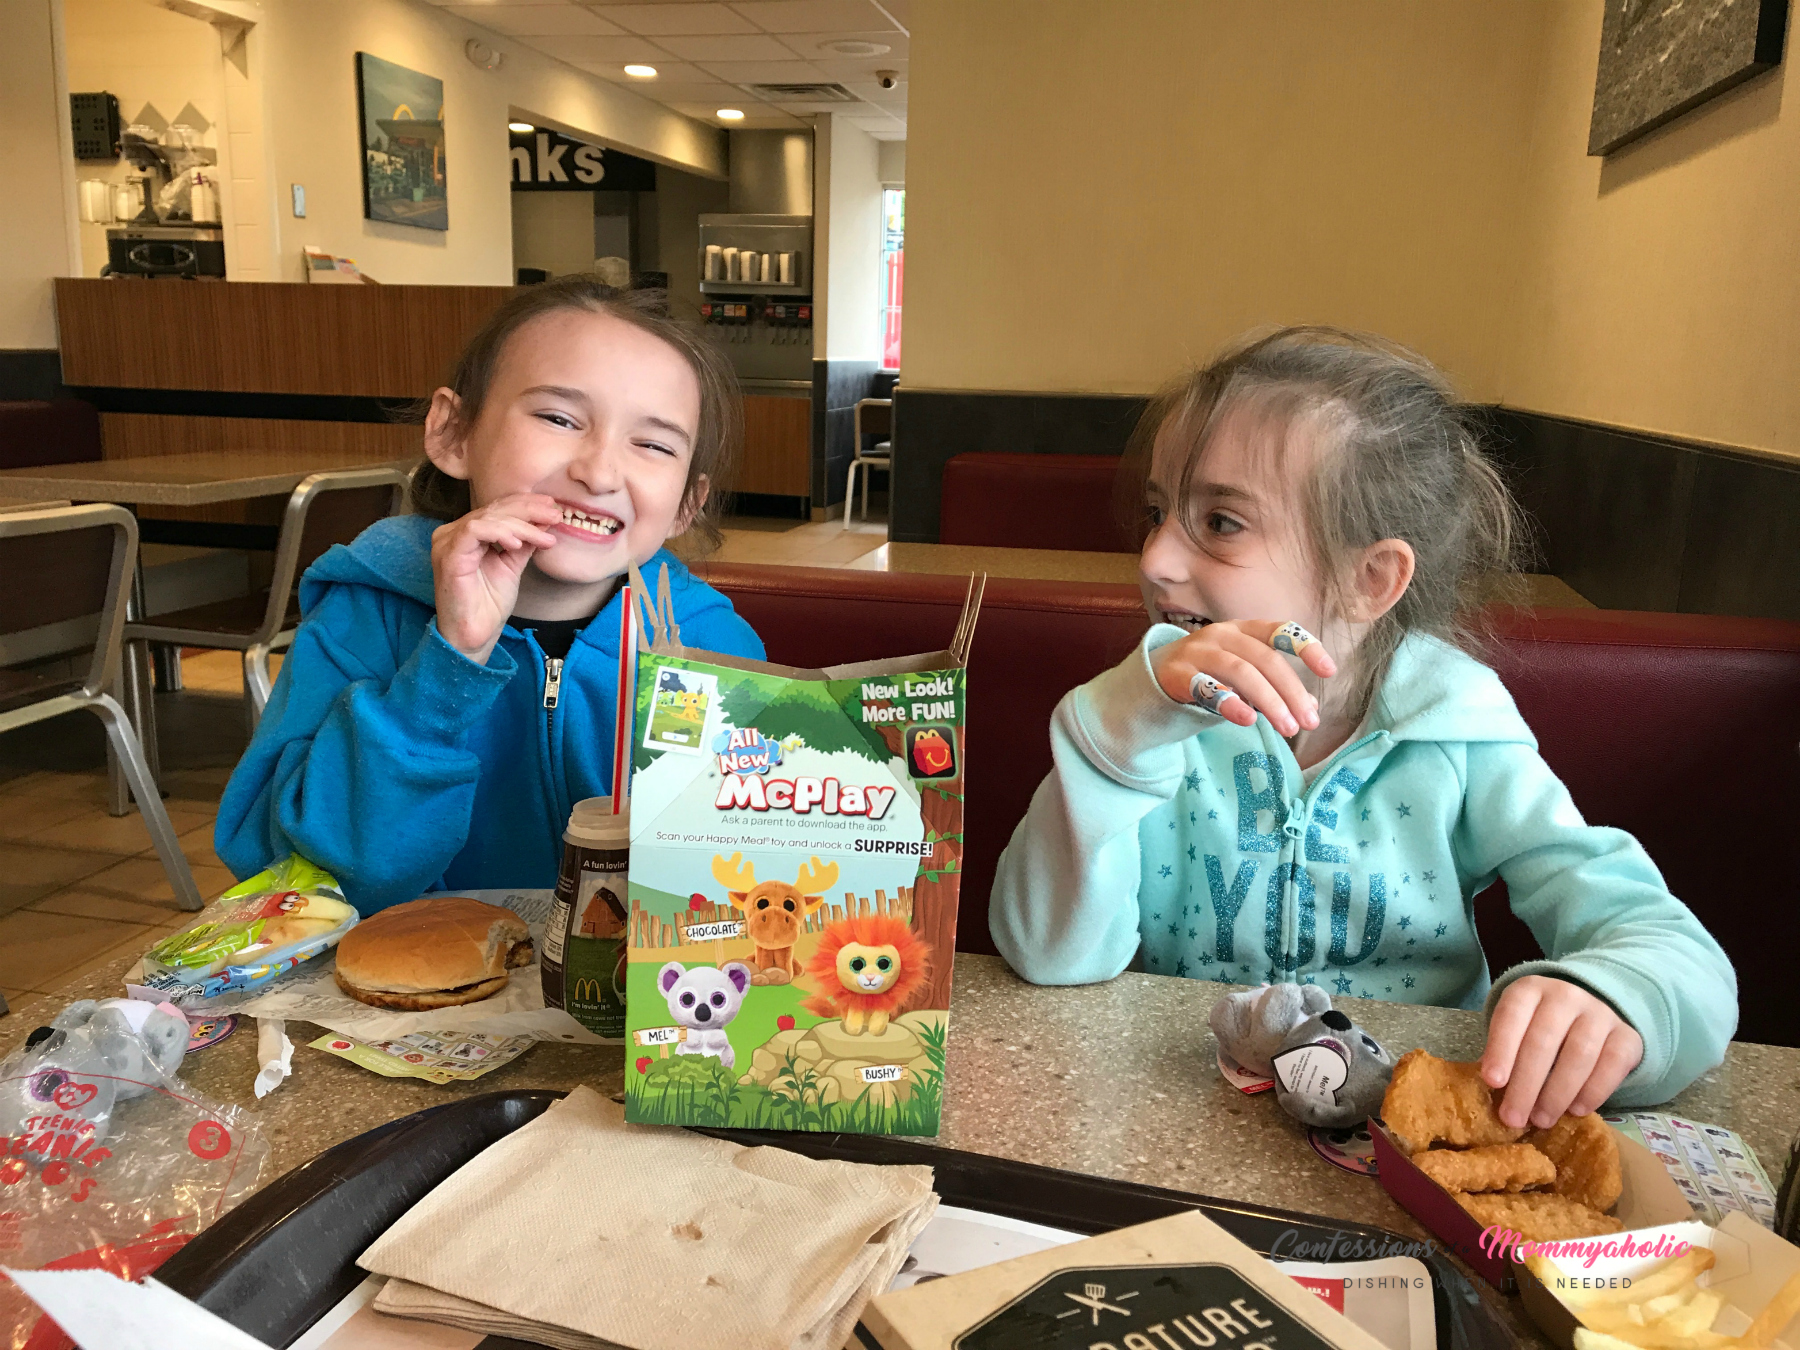 Kids eating McDonald's Happy Meals